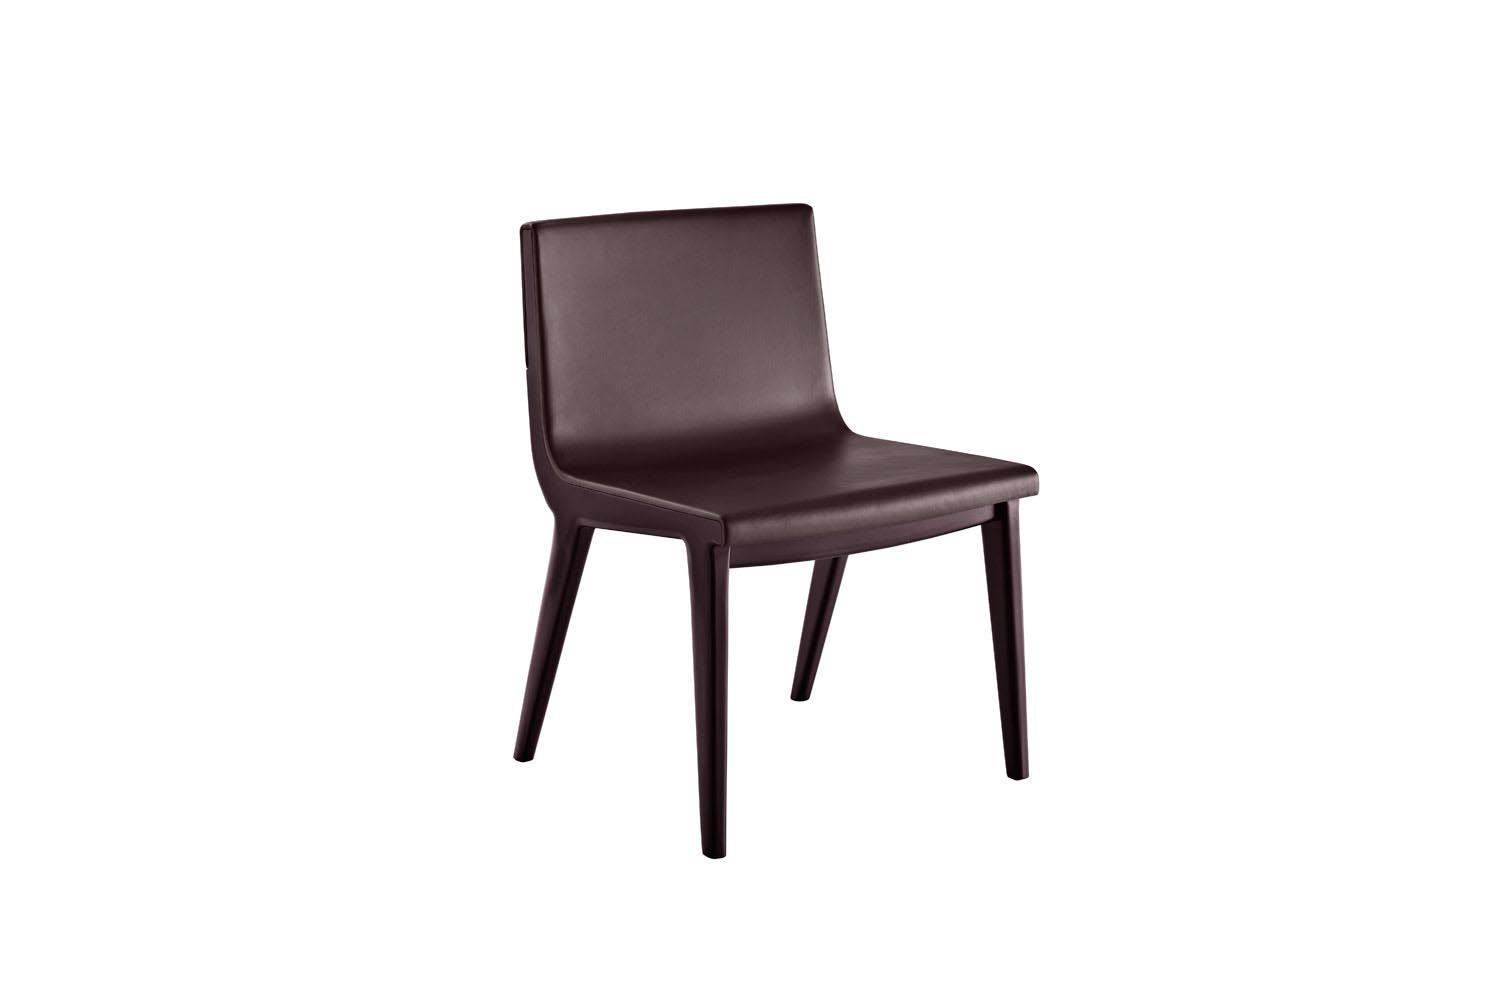 Acanto '14 Chair by Antonio Citterio for Maxalto